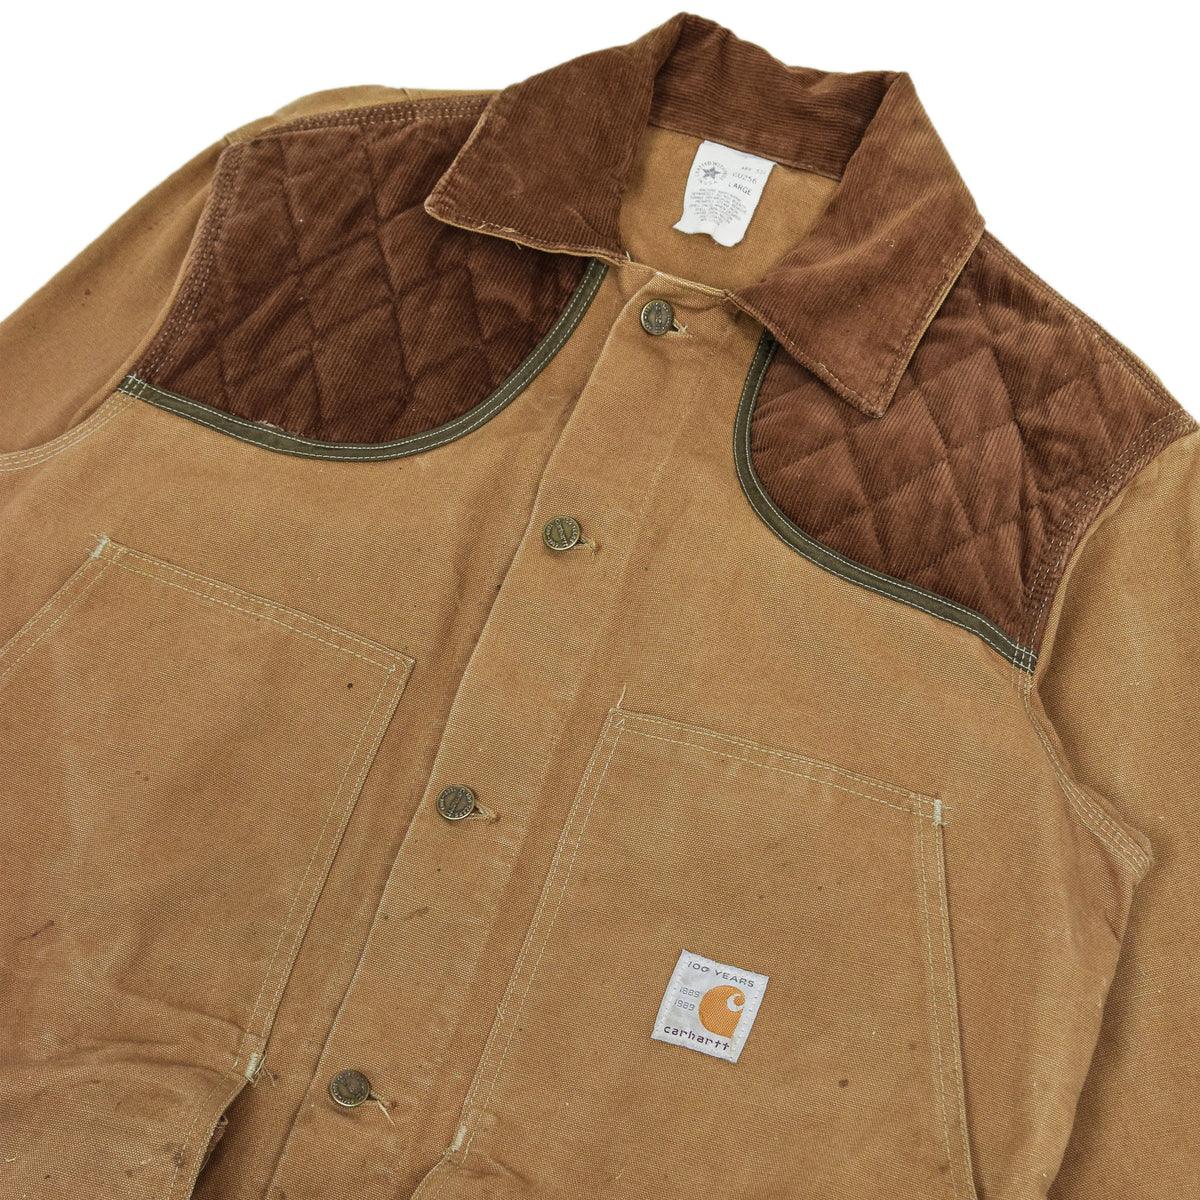 Vintage 80s Carhartt 100 Years Hunting Duck Canvas Shooting Jacket L chest